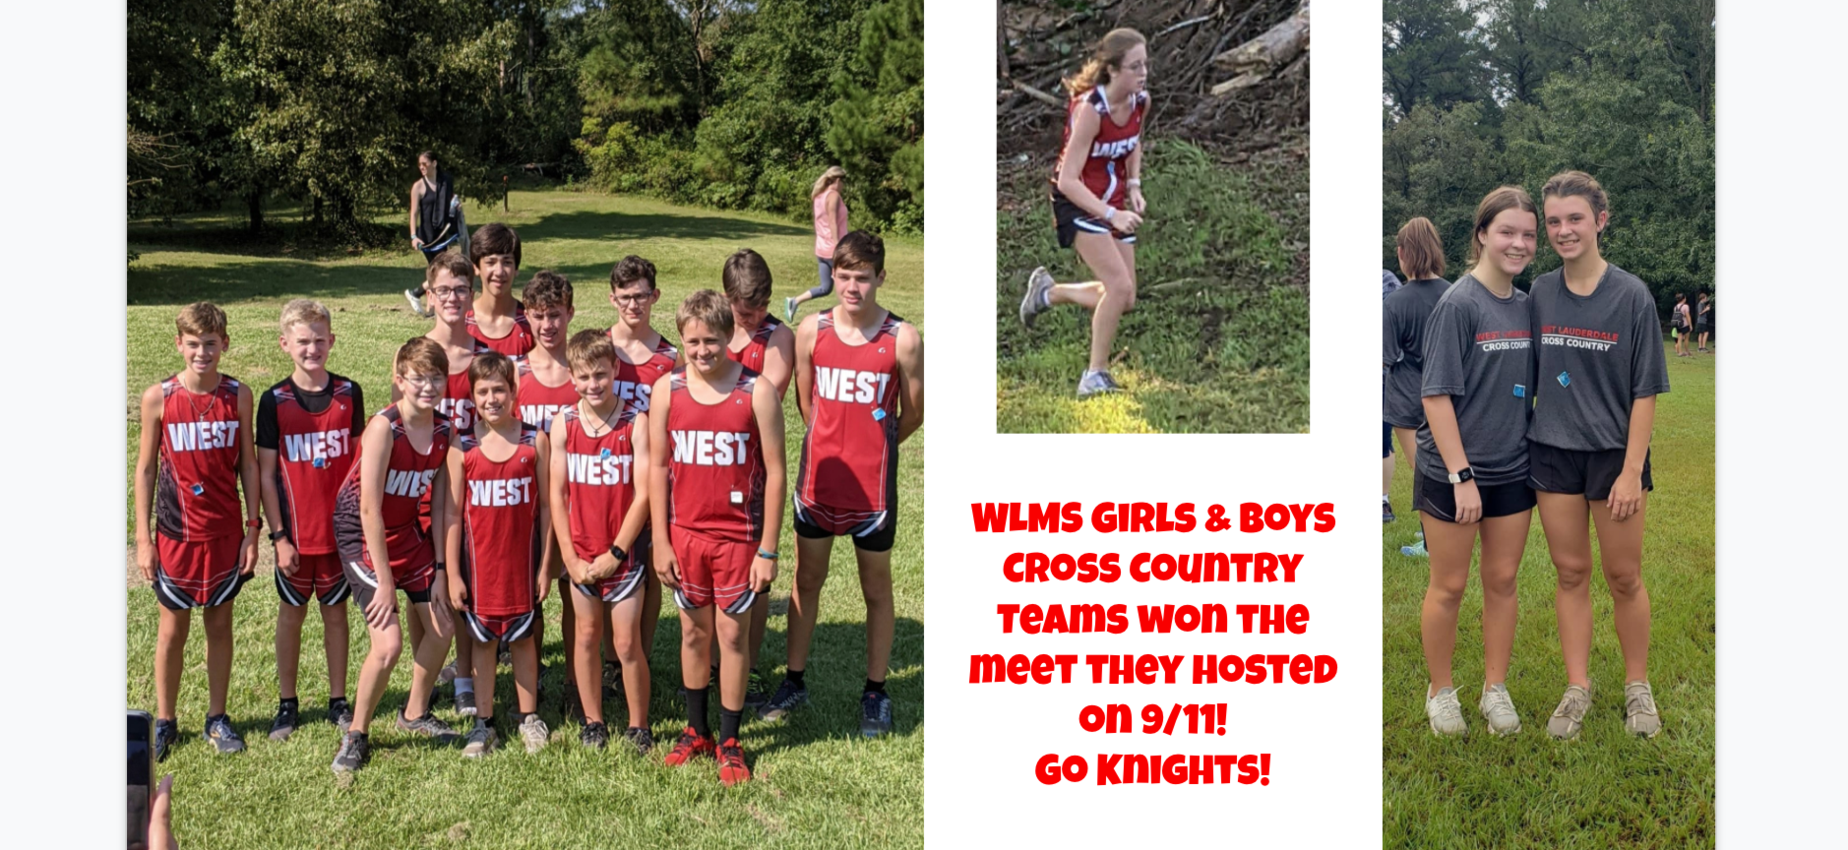 WLMS Cross Country Teams Won their meet on 9/11